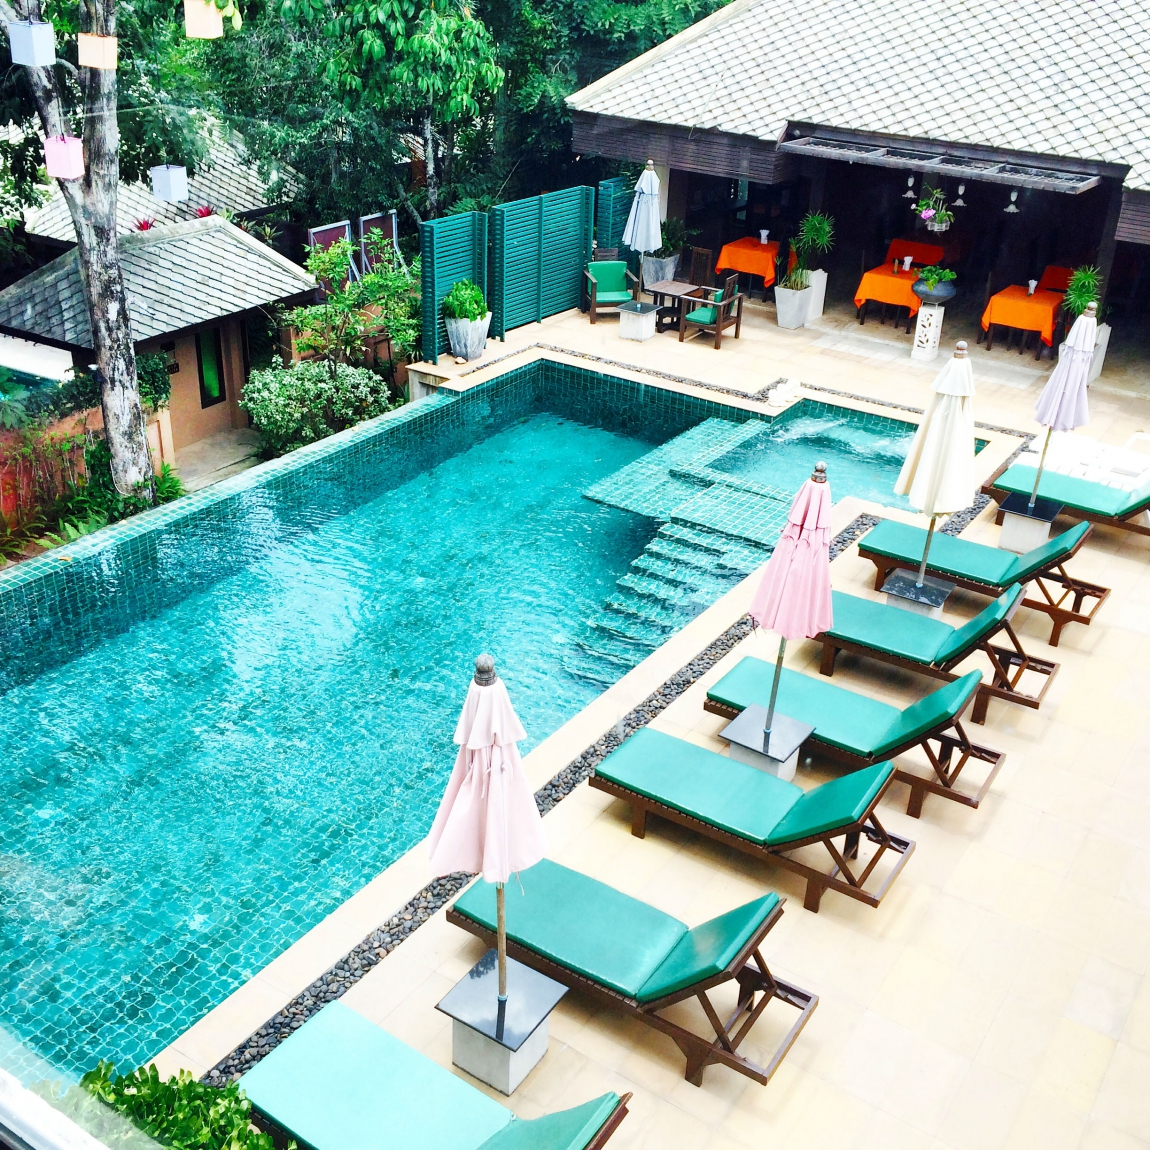 Image for [HOTEL REVIEW] Baan Kao Hua Jook Villas & Apartments Koh Samui, Thailand